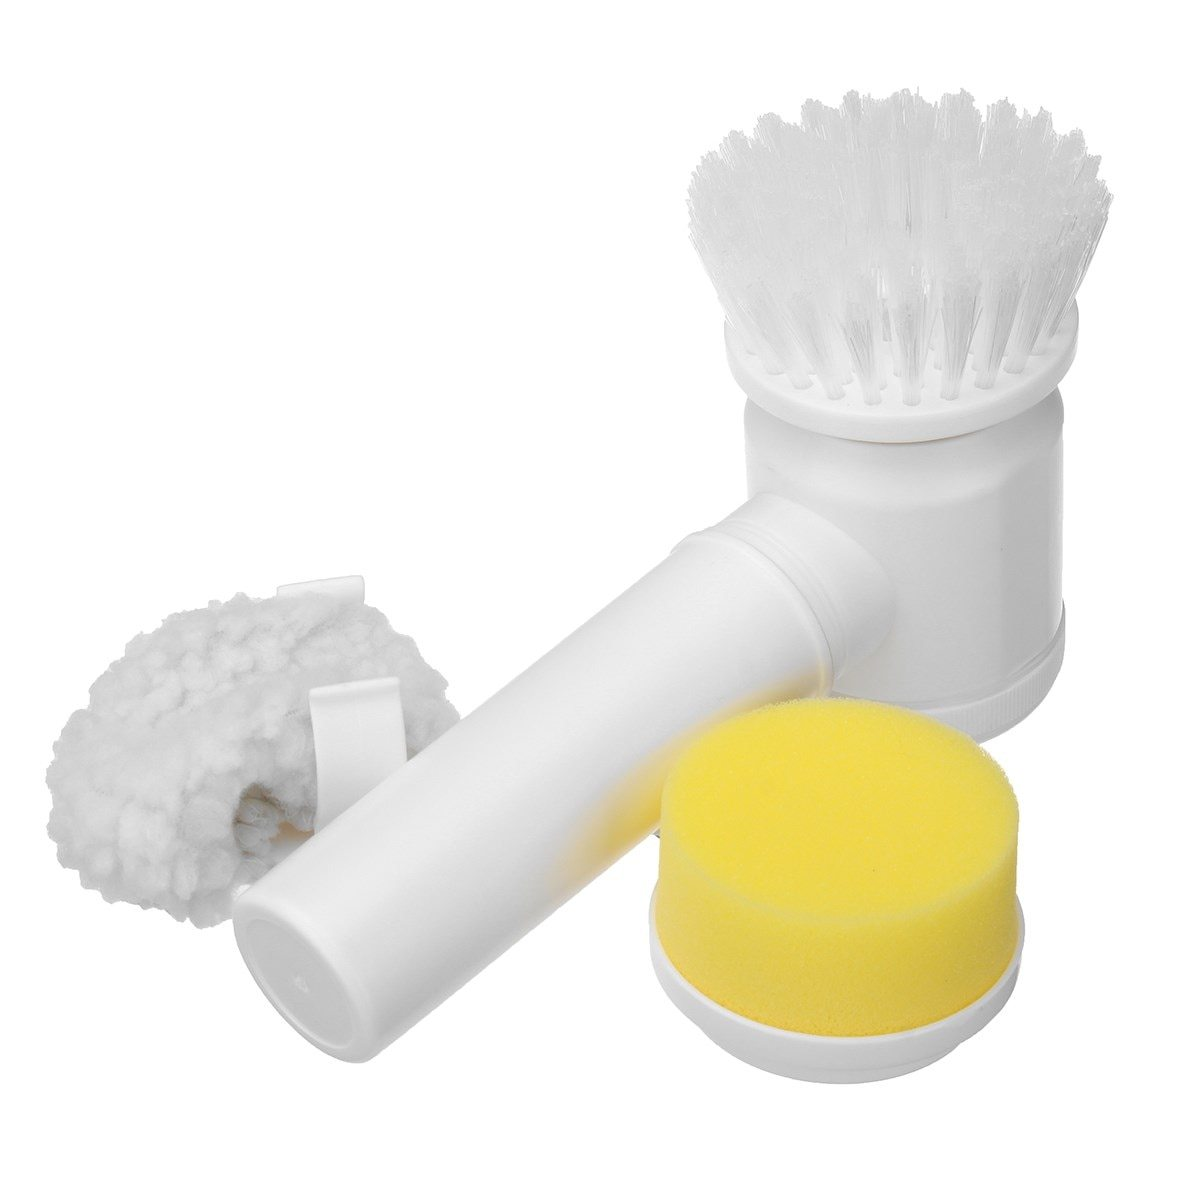 3-in-1 Electric Cleaning Brush